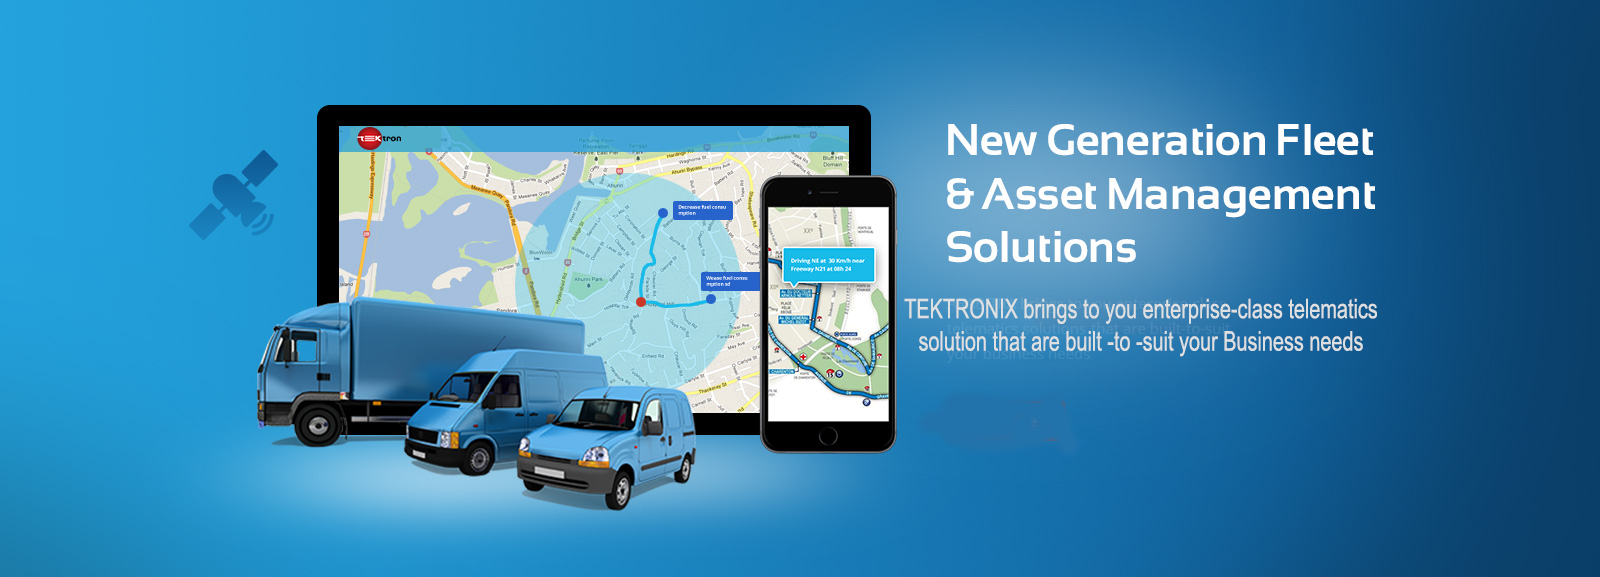 Live Gps Vehicle Tracking Systems For Vehicles In Dubai